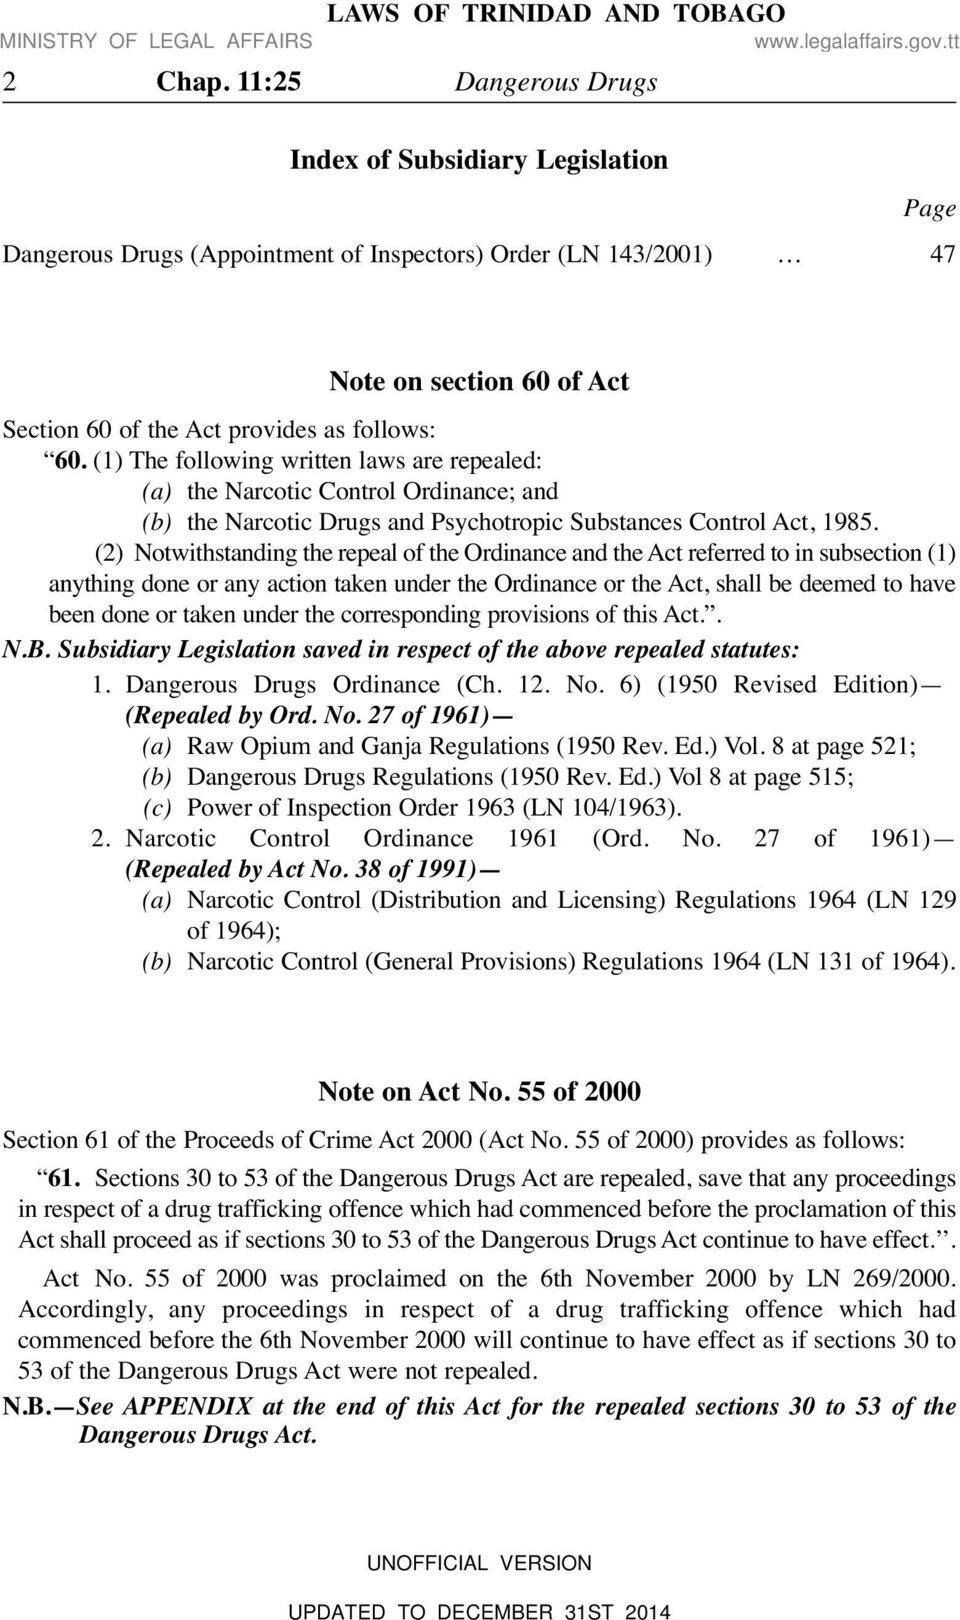 (1) The following written laws are repealed: (a) the Narcotic Control Ordinance; and (b) the Narcotic Drugs and Psychotropic Substances Control Act, 1985.